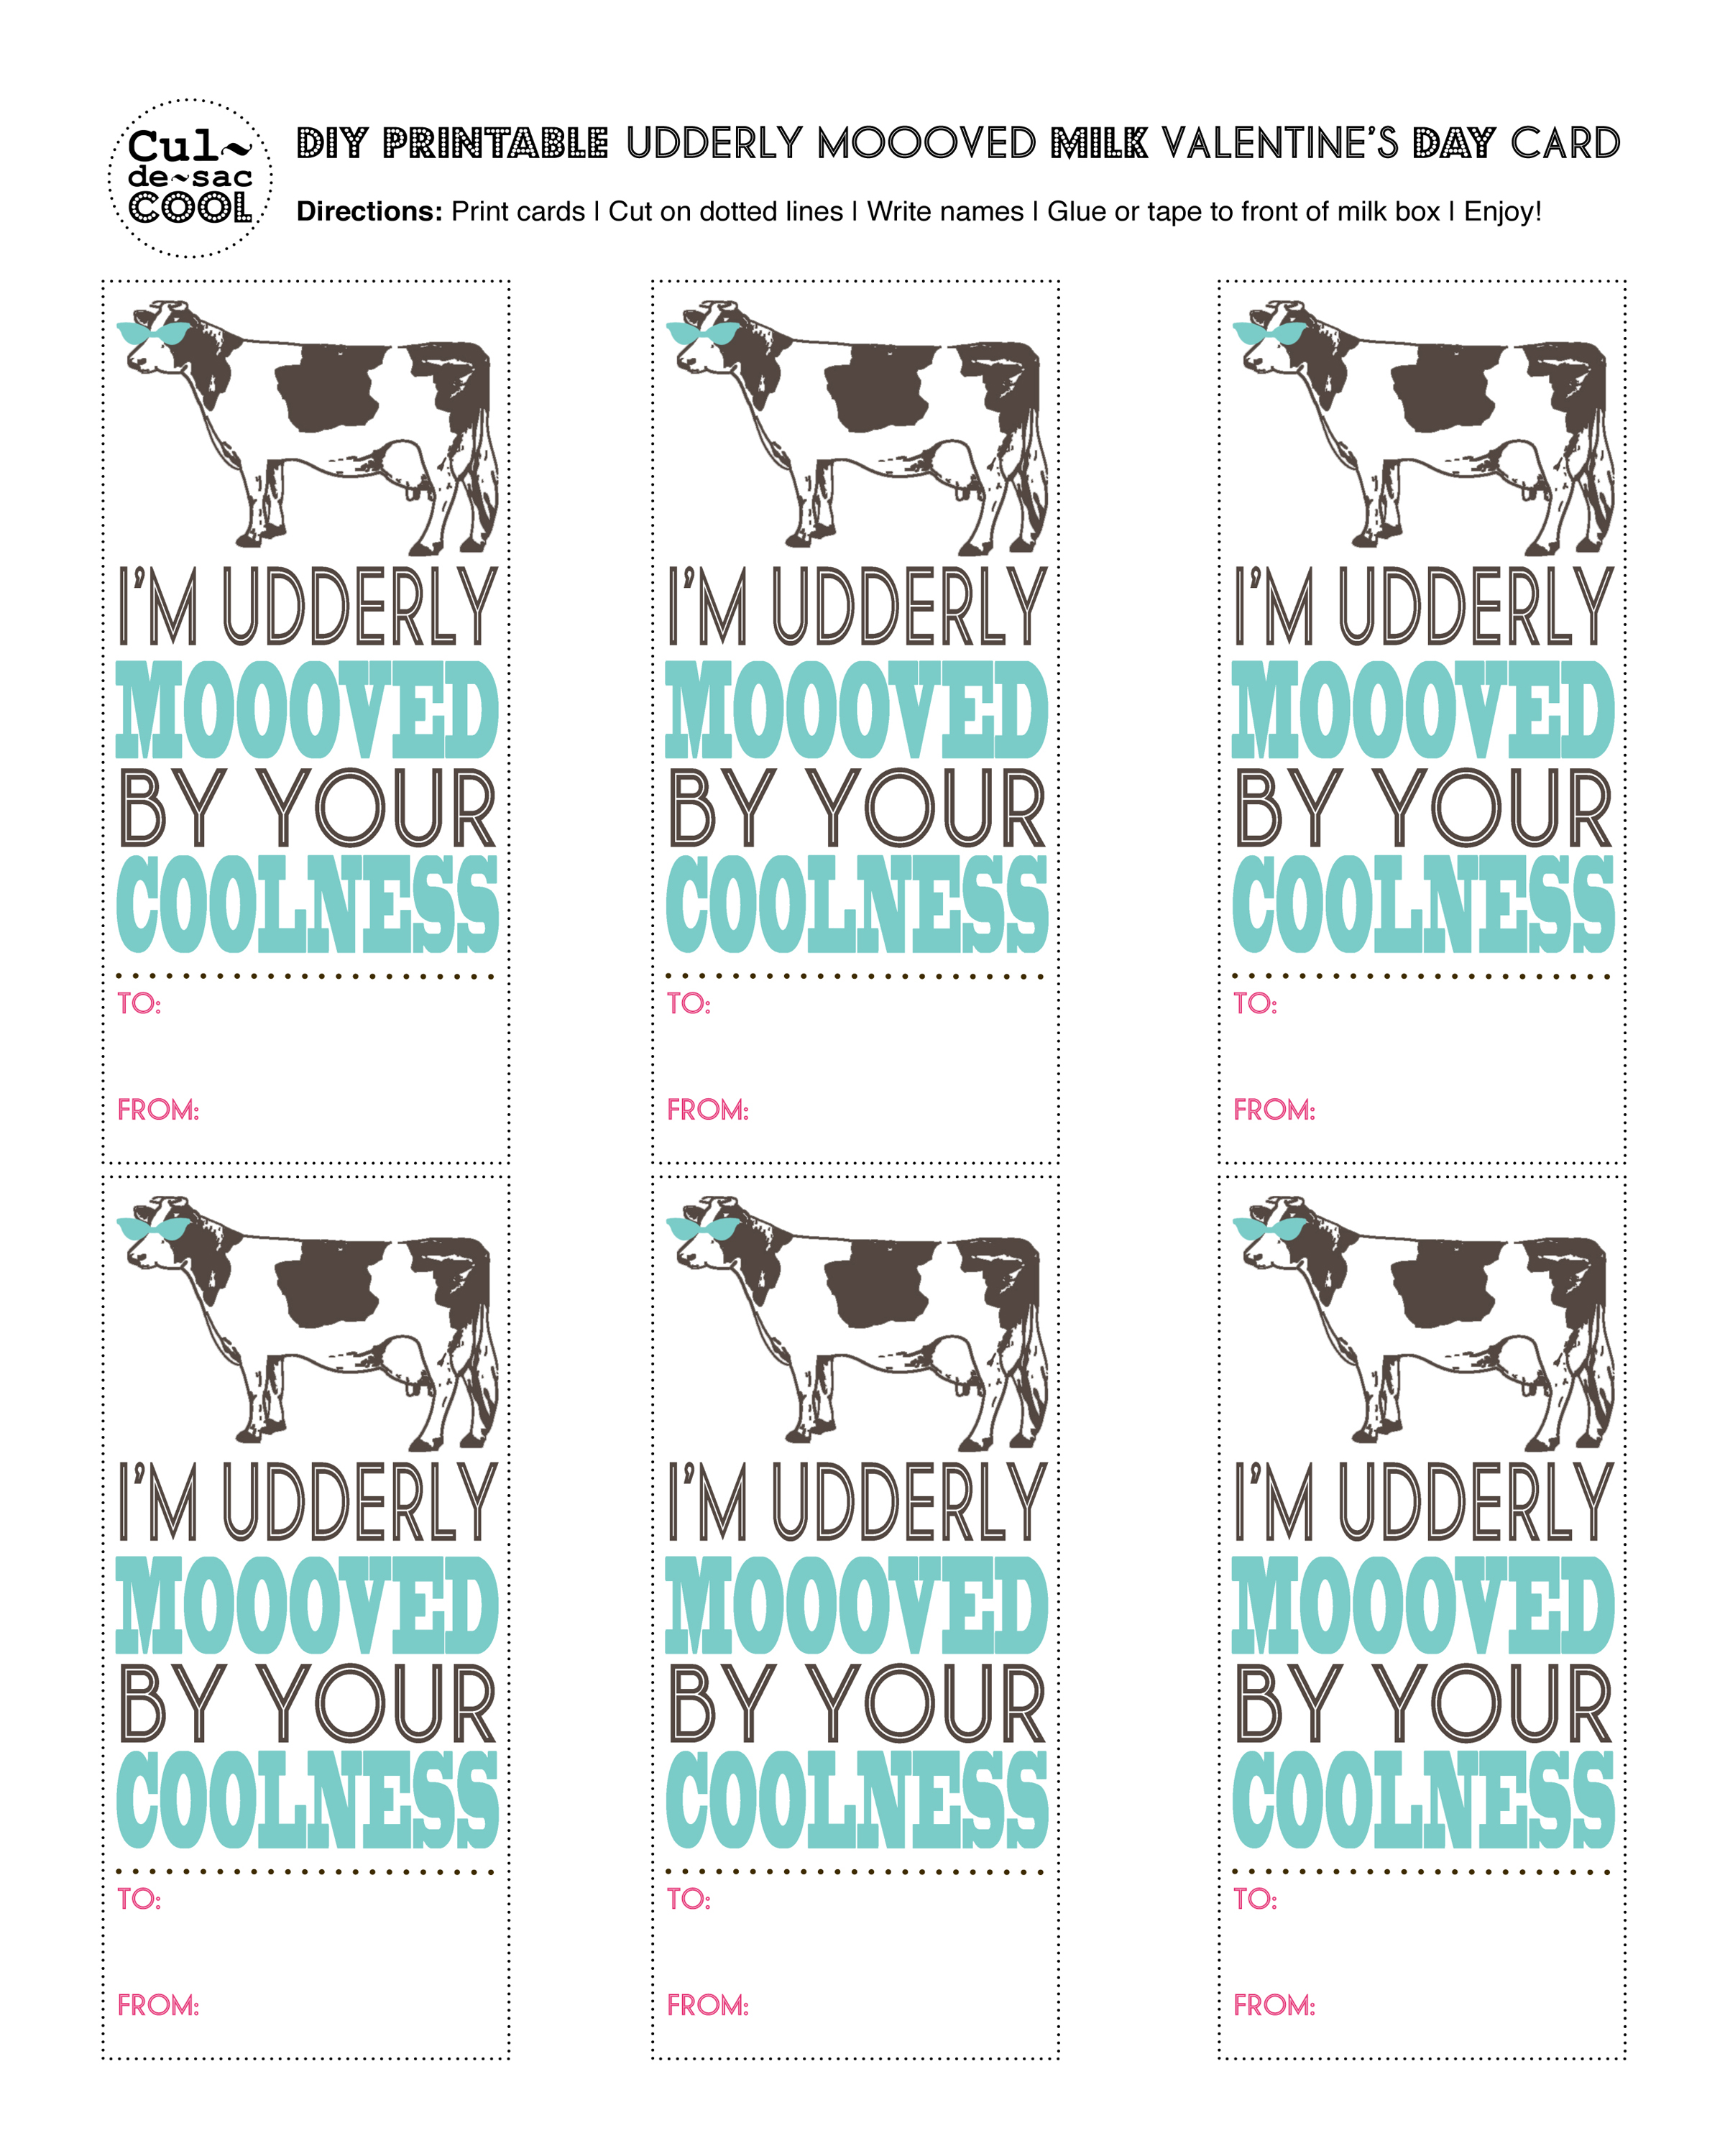 Diy Printable Udderly Moooved Milk Valentine S Day Card